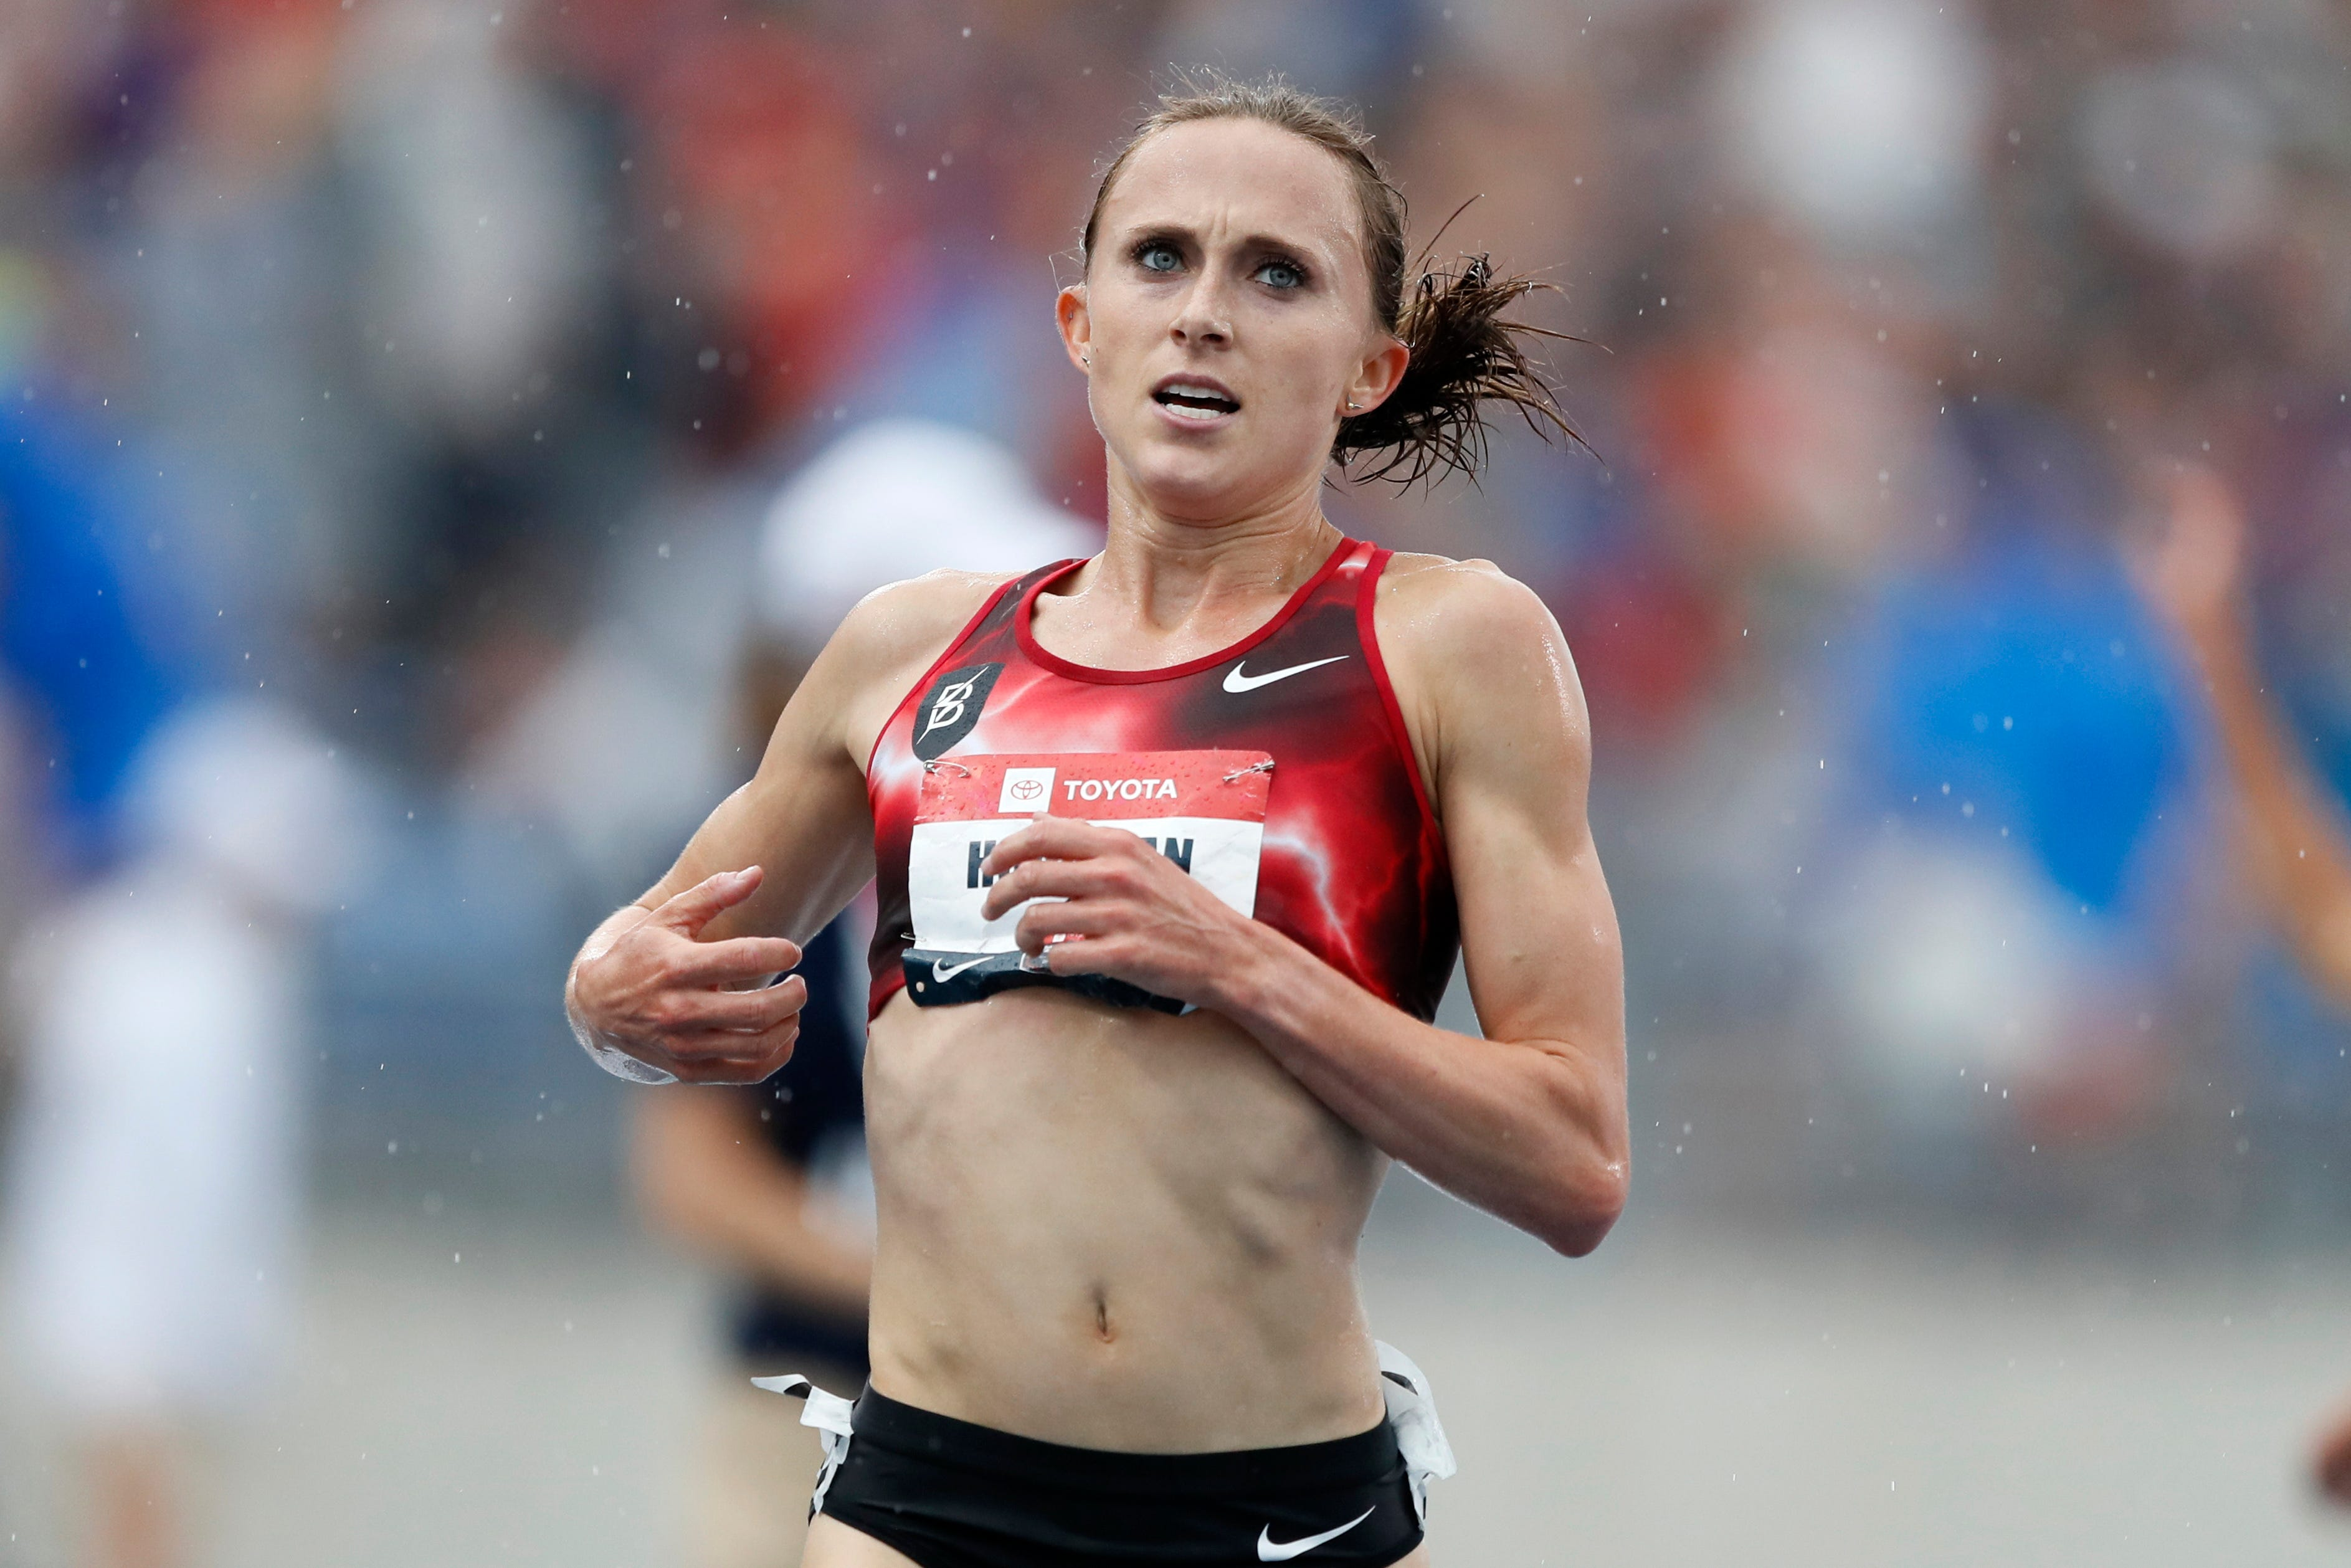 US Olympic officials reverse course, boot banned runner Shelby Houlihan from track trials